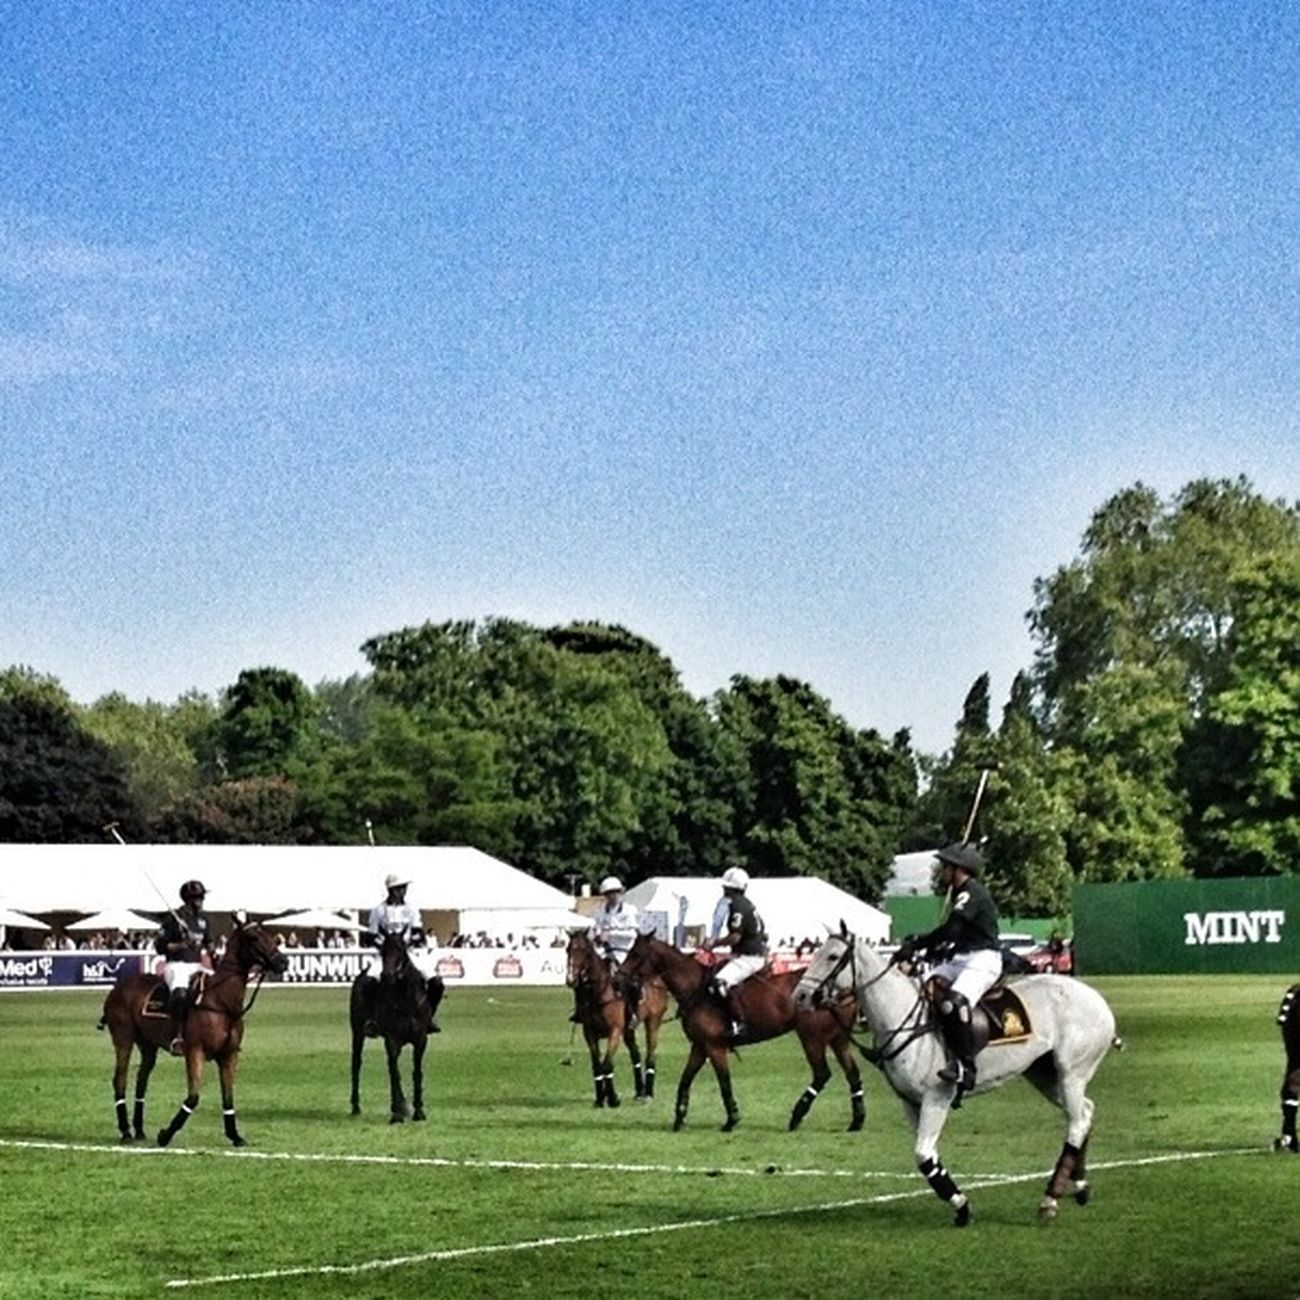 Mint Polo Match